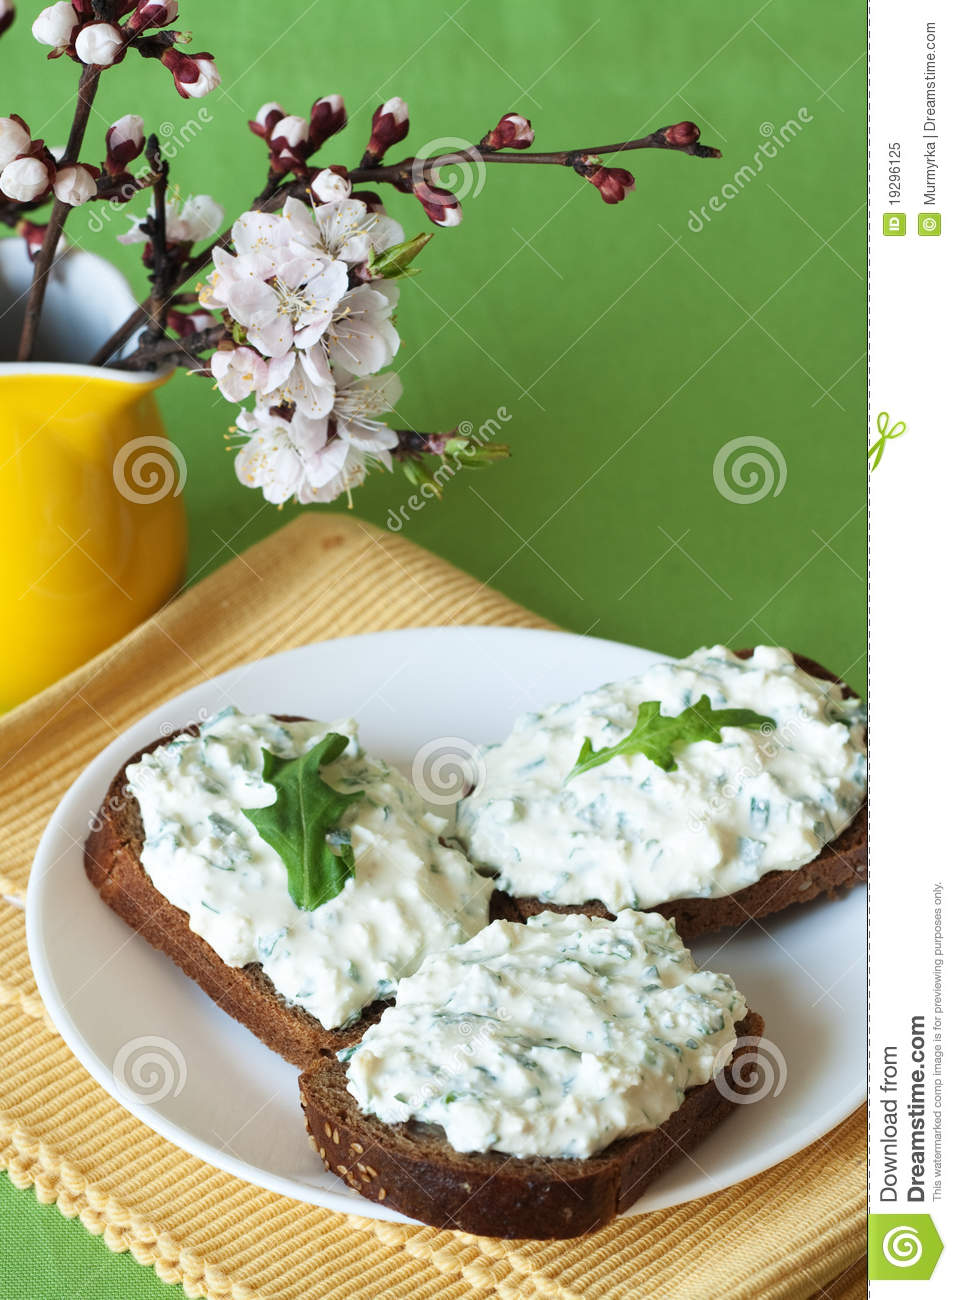 Cheese snack on rye bread